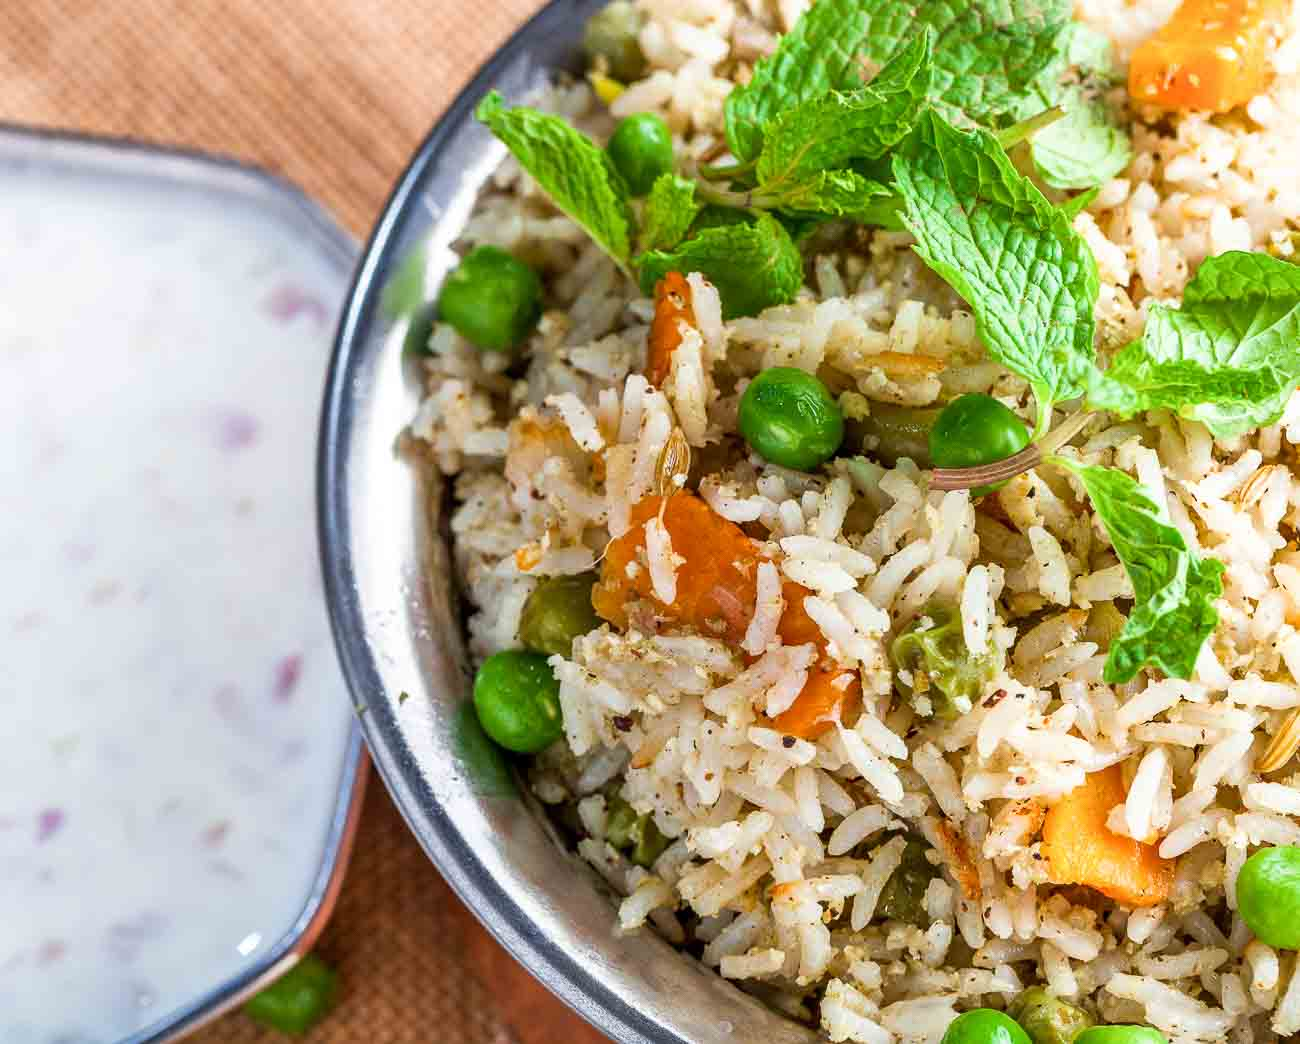 Chettinad Vegetable Pulao Recipe